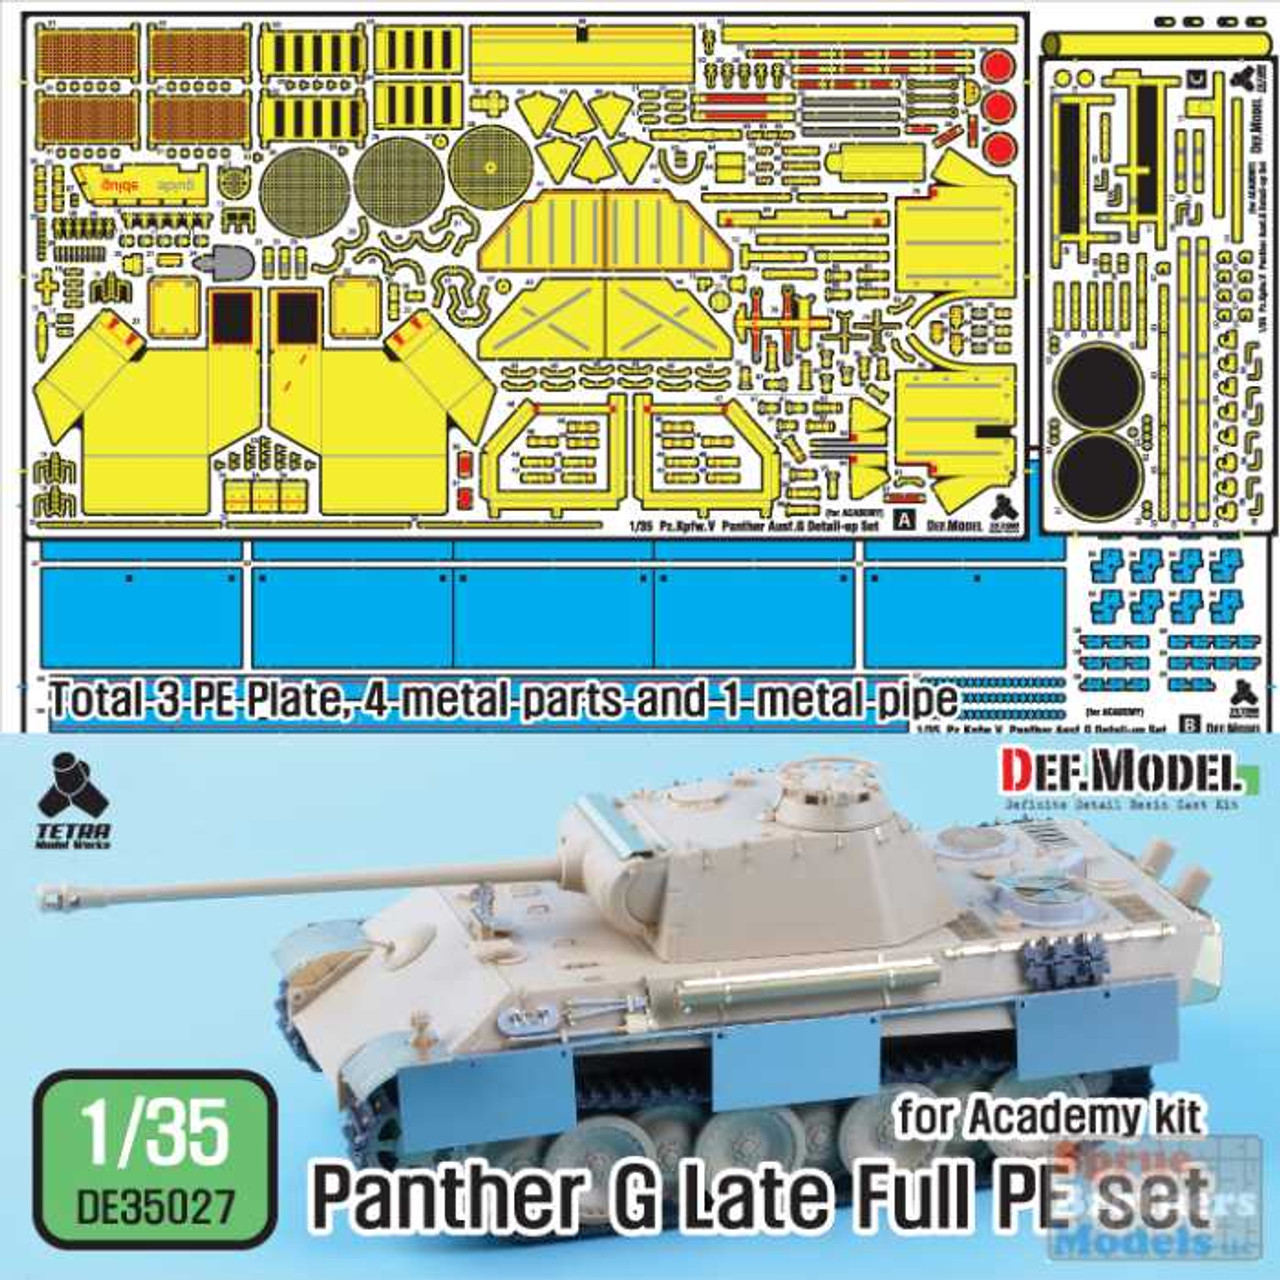 DEFDE35027 1:35 DEF Model Panther G Late Full PE Detail Set (ACA kit)